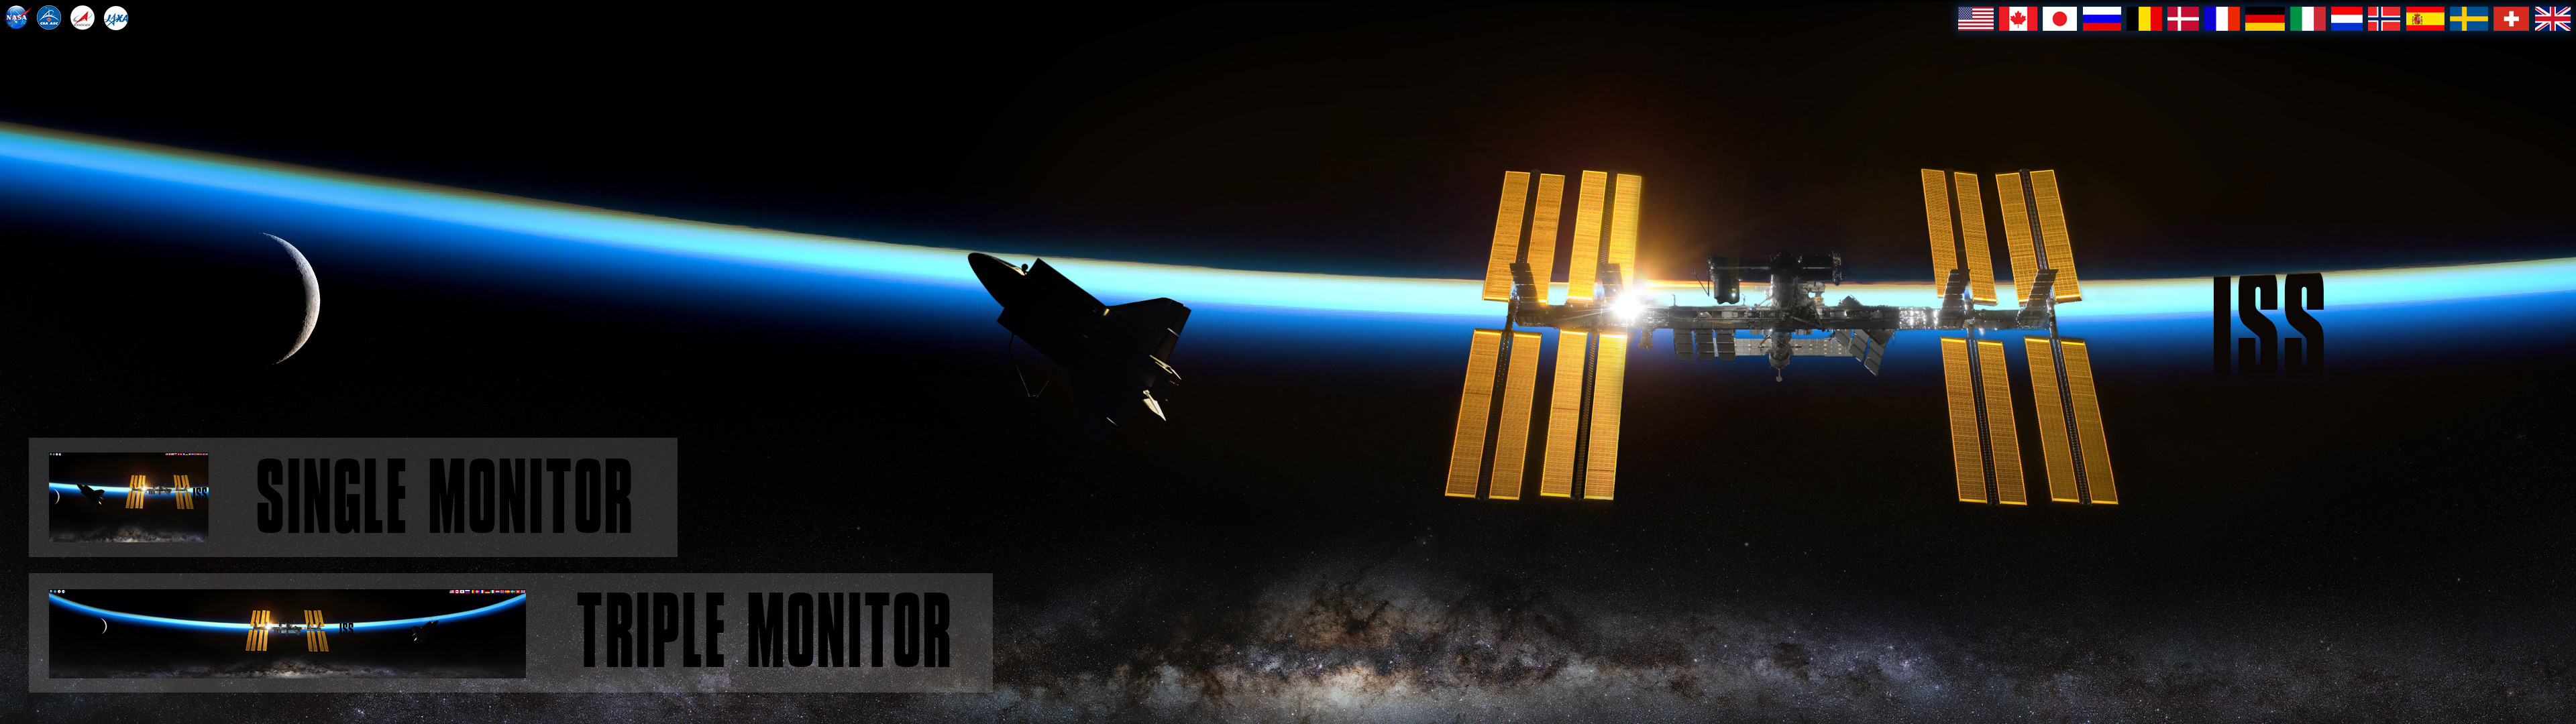 3840x1080 ... NASA ISS - International Space Station Wallpaper by foxgguy2001